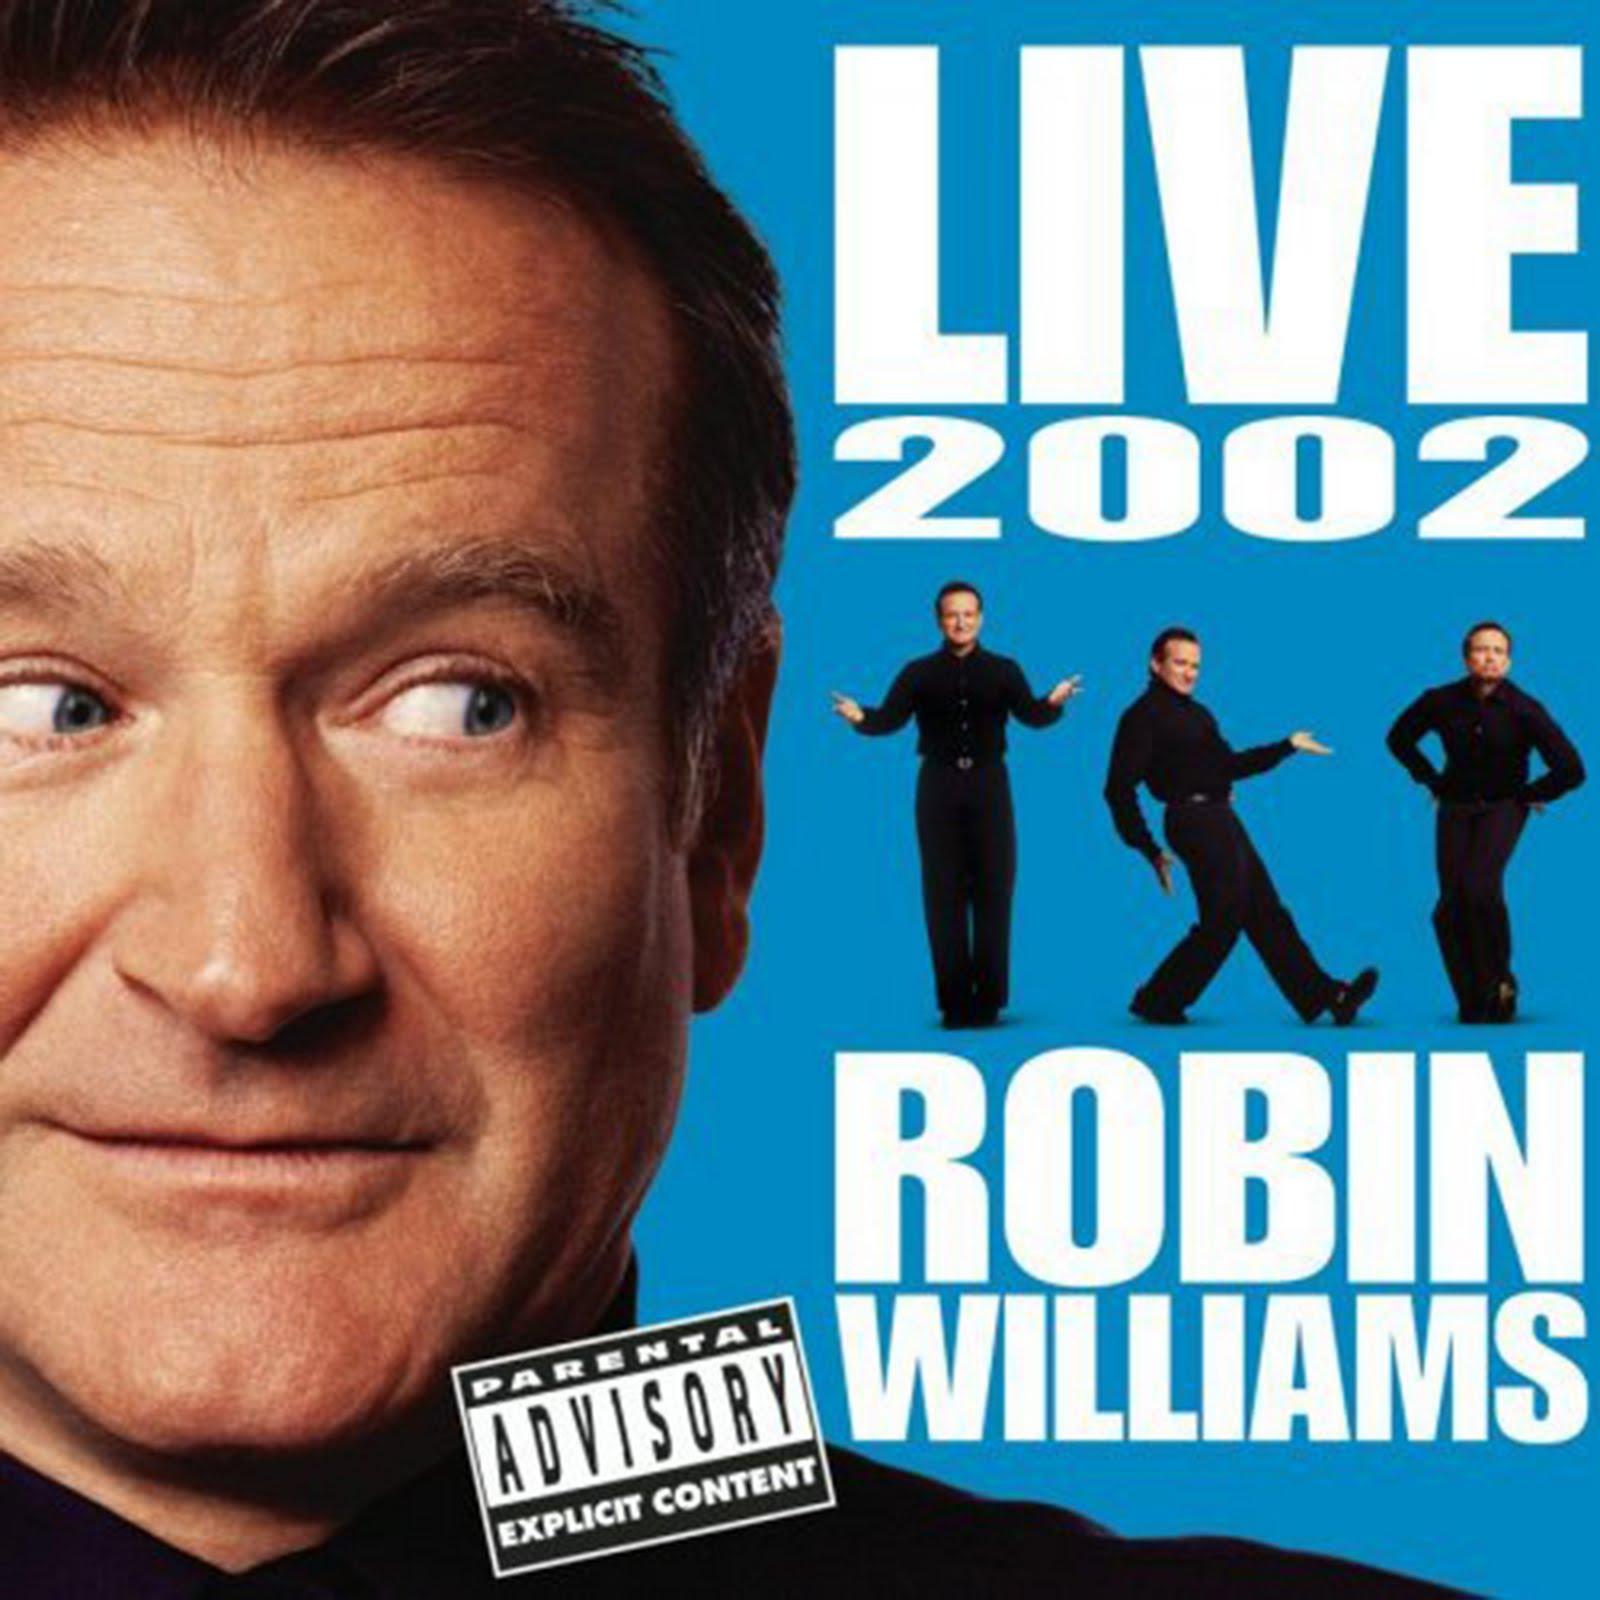 http://3.bp.blogspot.com/_0YLDid0sWu8/TA2YY1Pc0aI/AAAAAAAAFhk/cxa_OeX_BDg/s1600/FRONT+Robin+Williams+-+Live+On+Broadway+2002.jpg